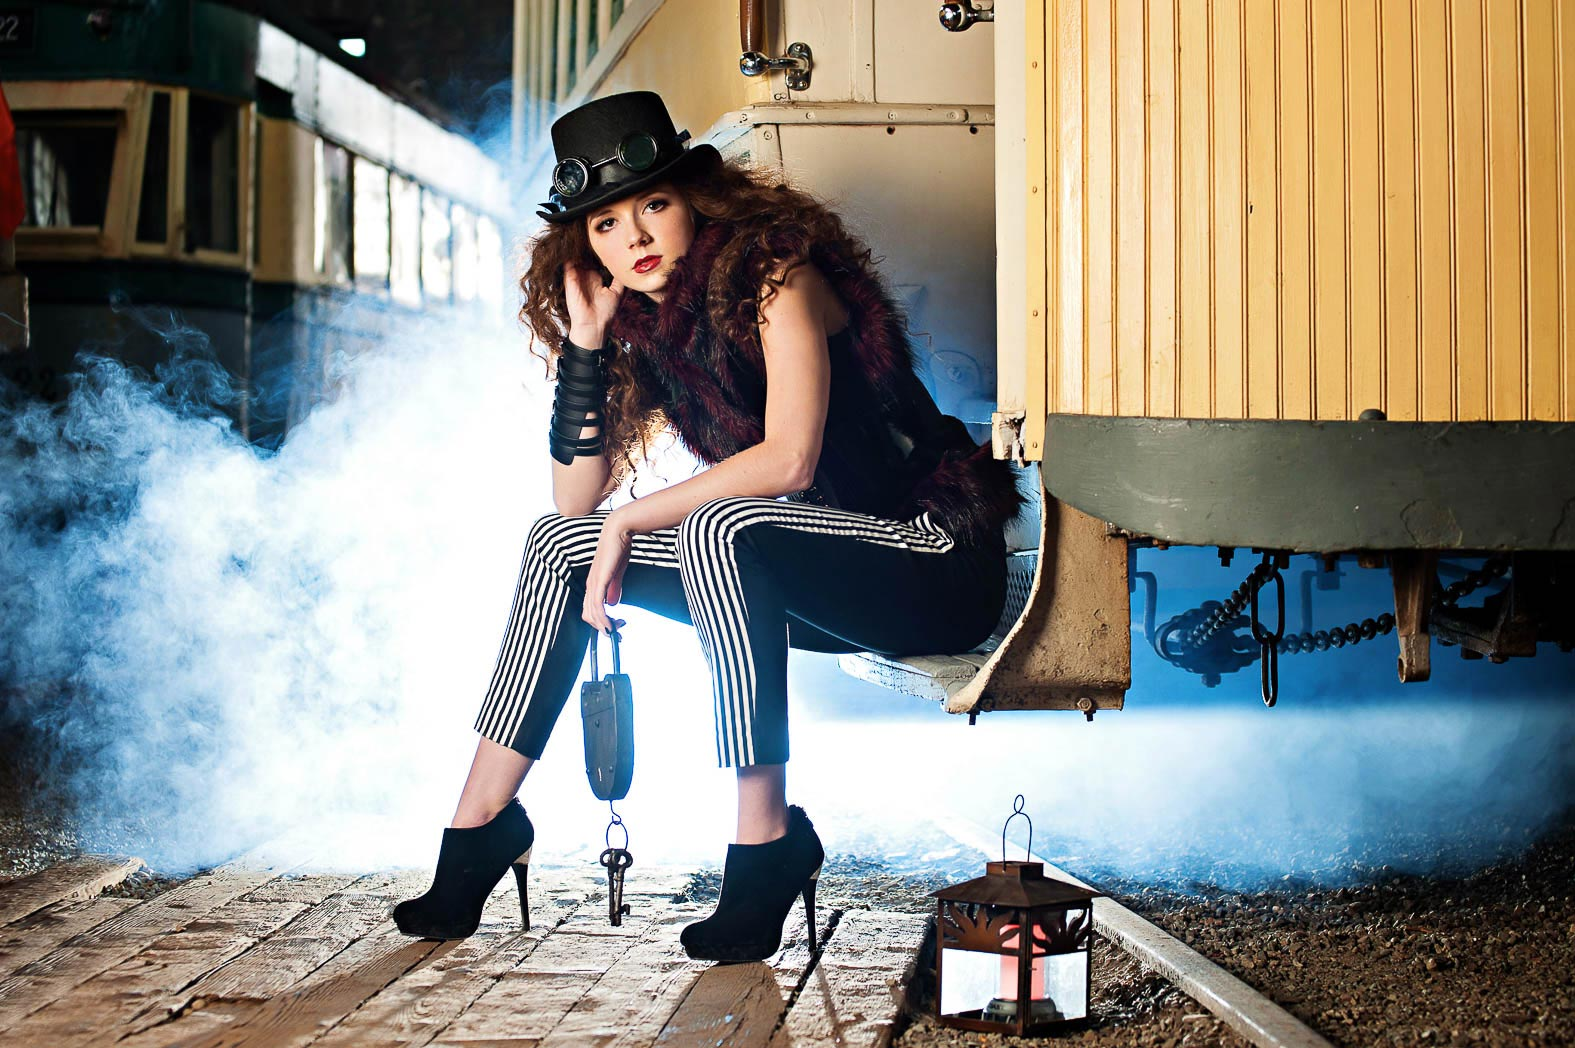 photonuvo-steam-punk-senior-model-dressed-steampunk-style-sitting-on-train-steps-surrounded-by-steam